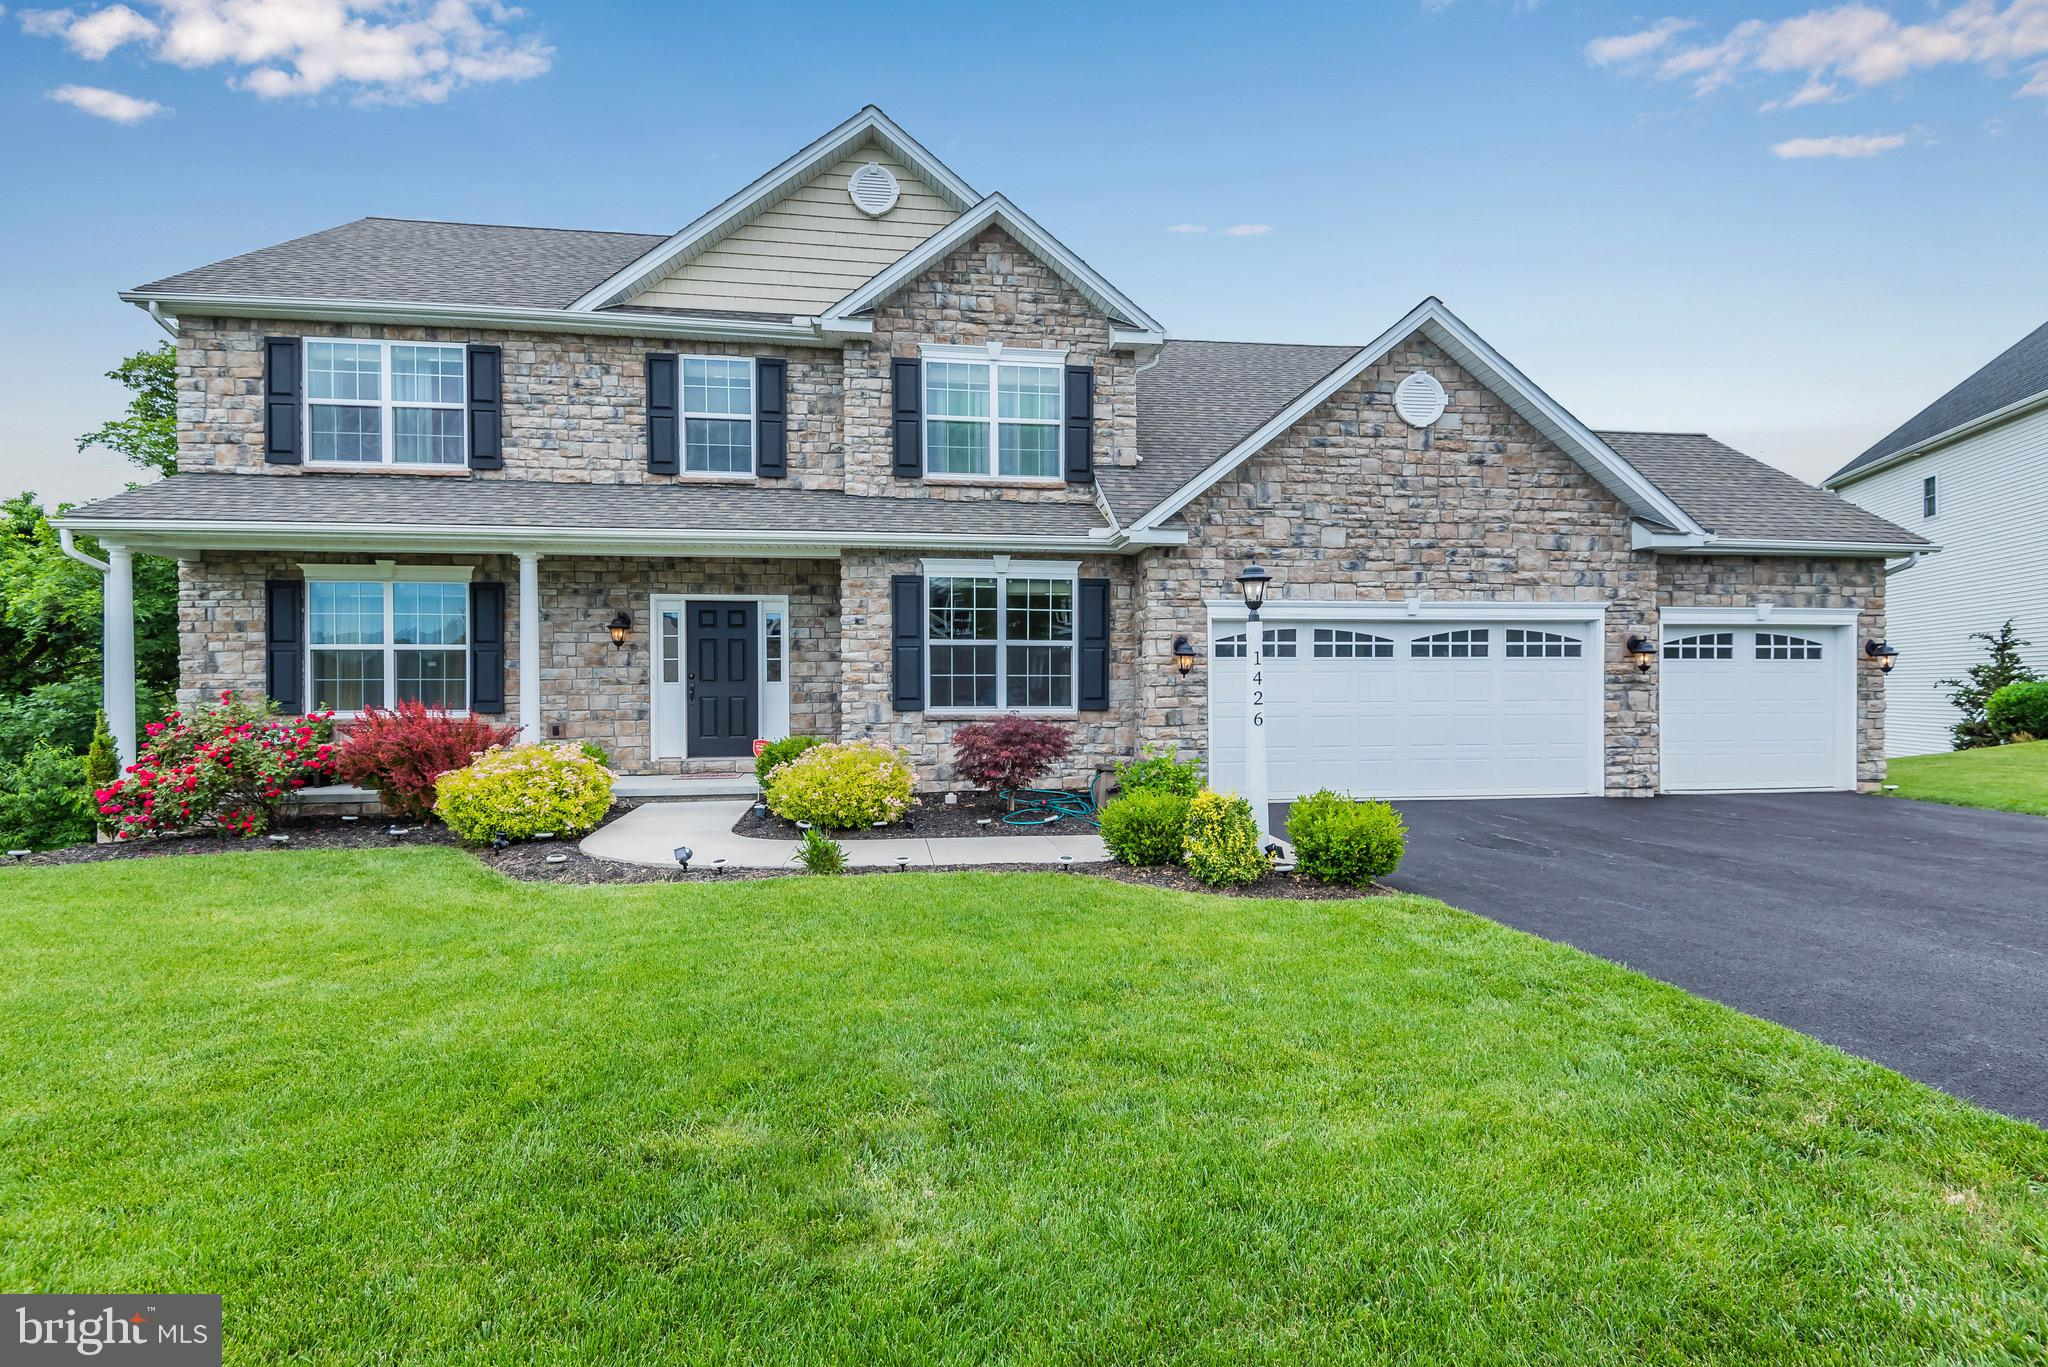 Welcome home to 1426 Summit Way!